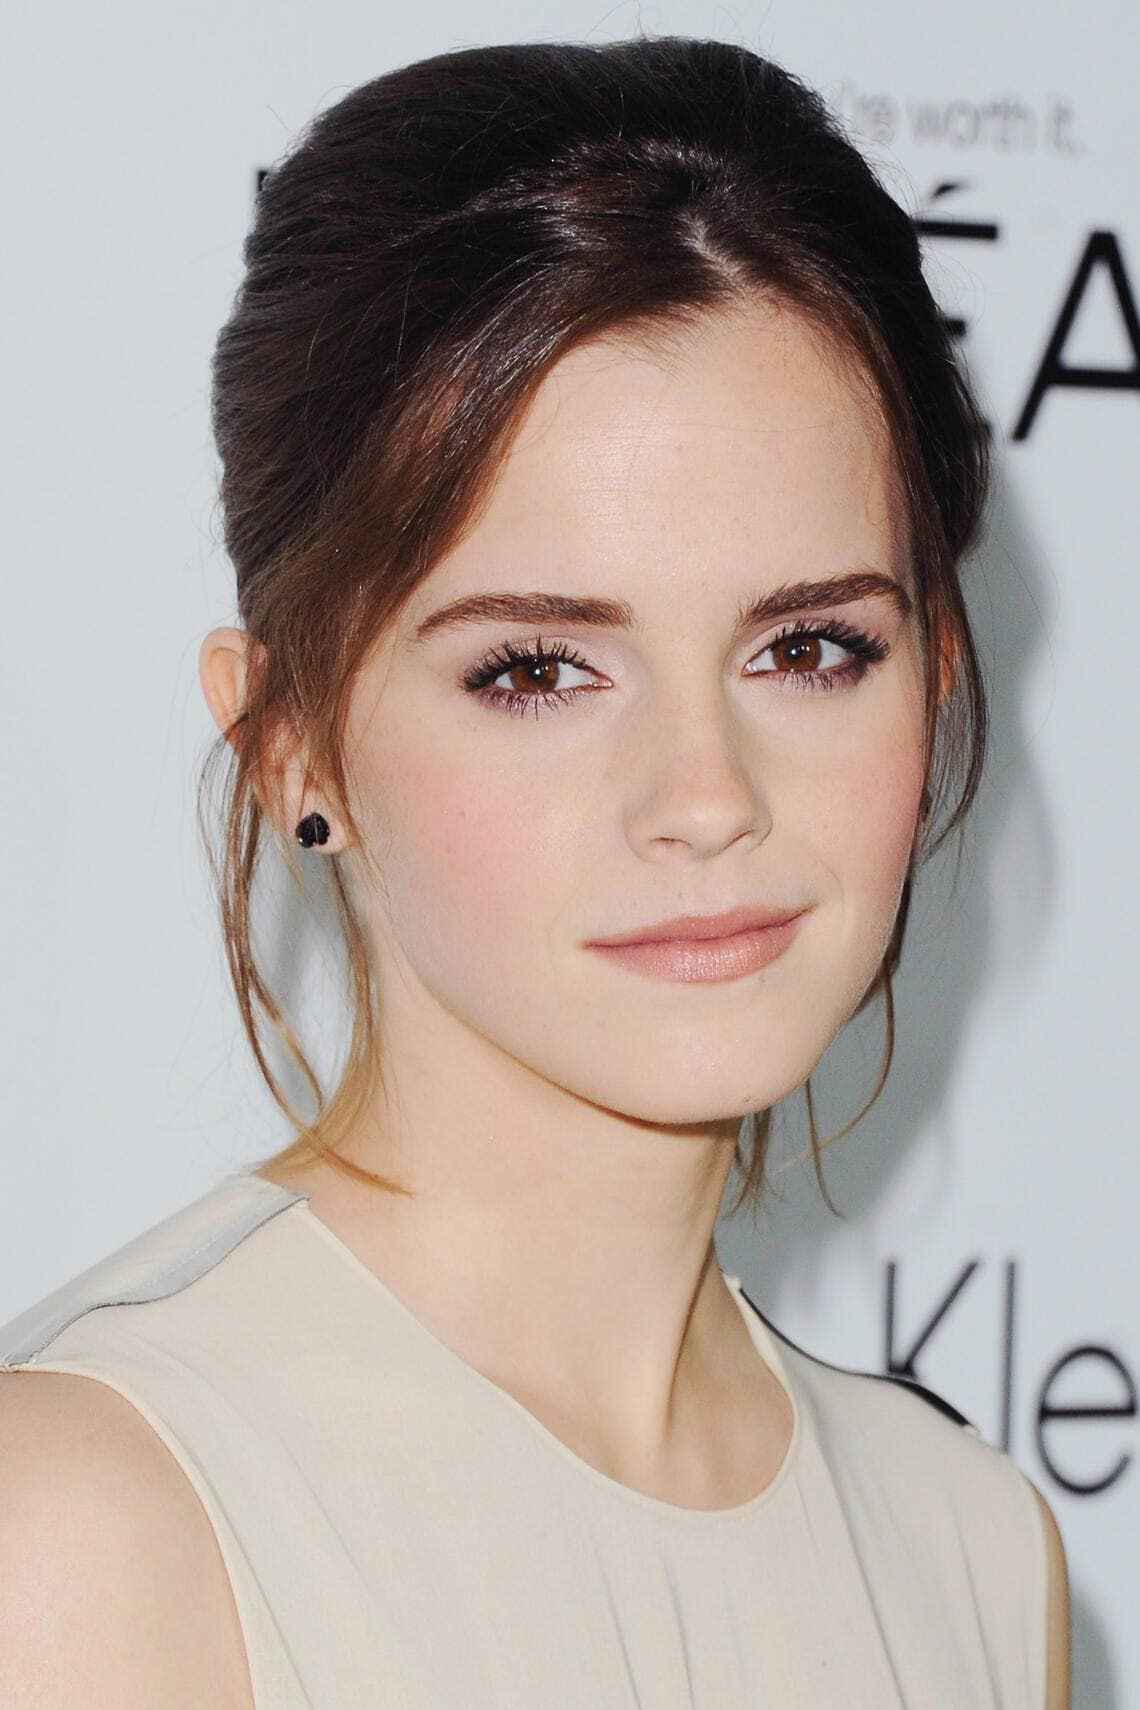 Fifty Shades of Grey Verfilmung E L James Bestseller Emma Watson Hauptrolle Constantin Leak